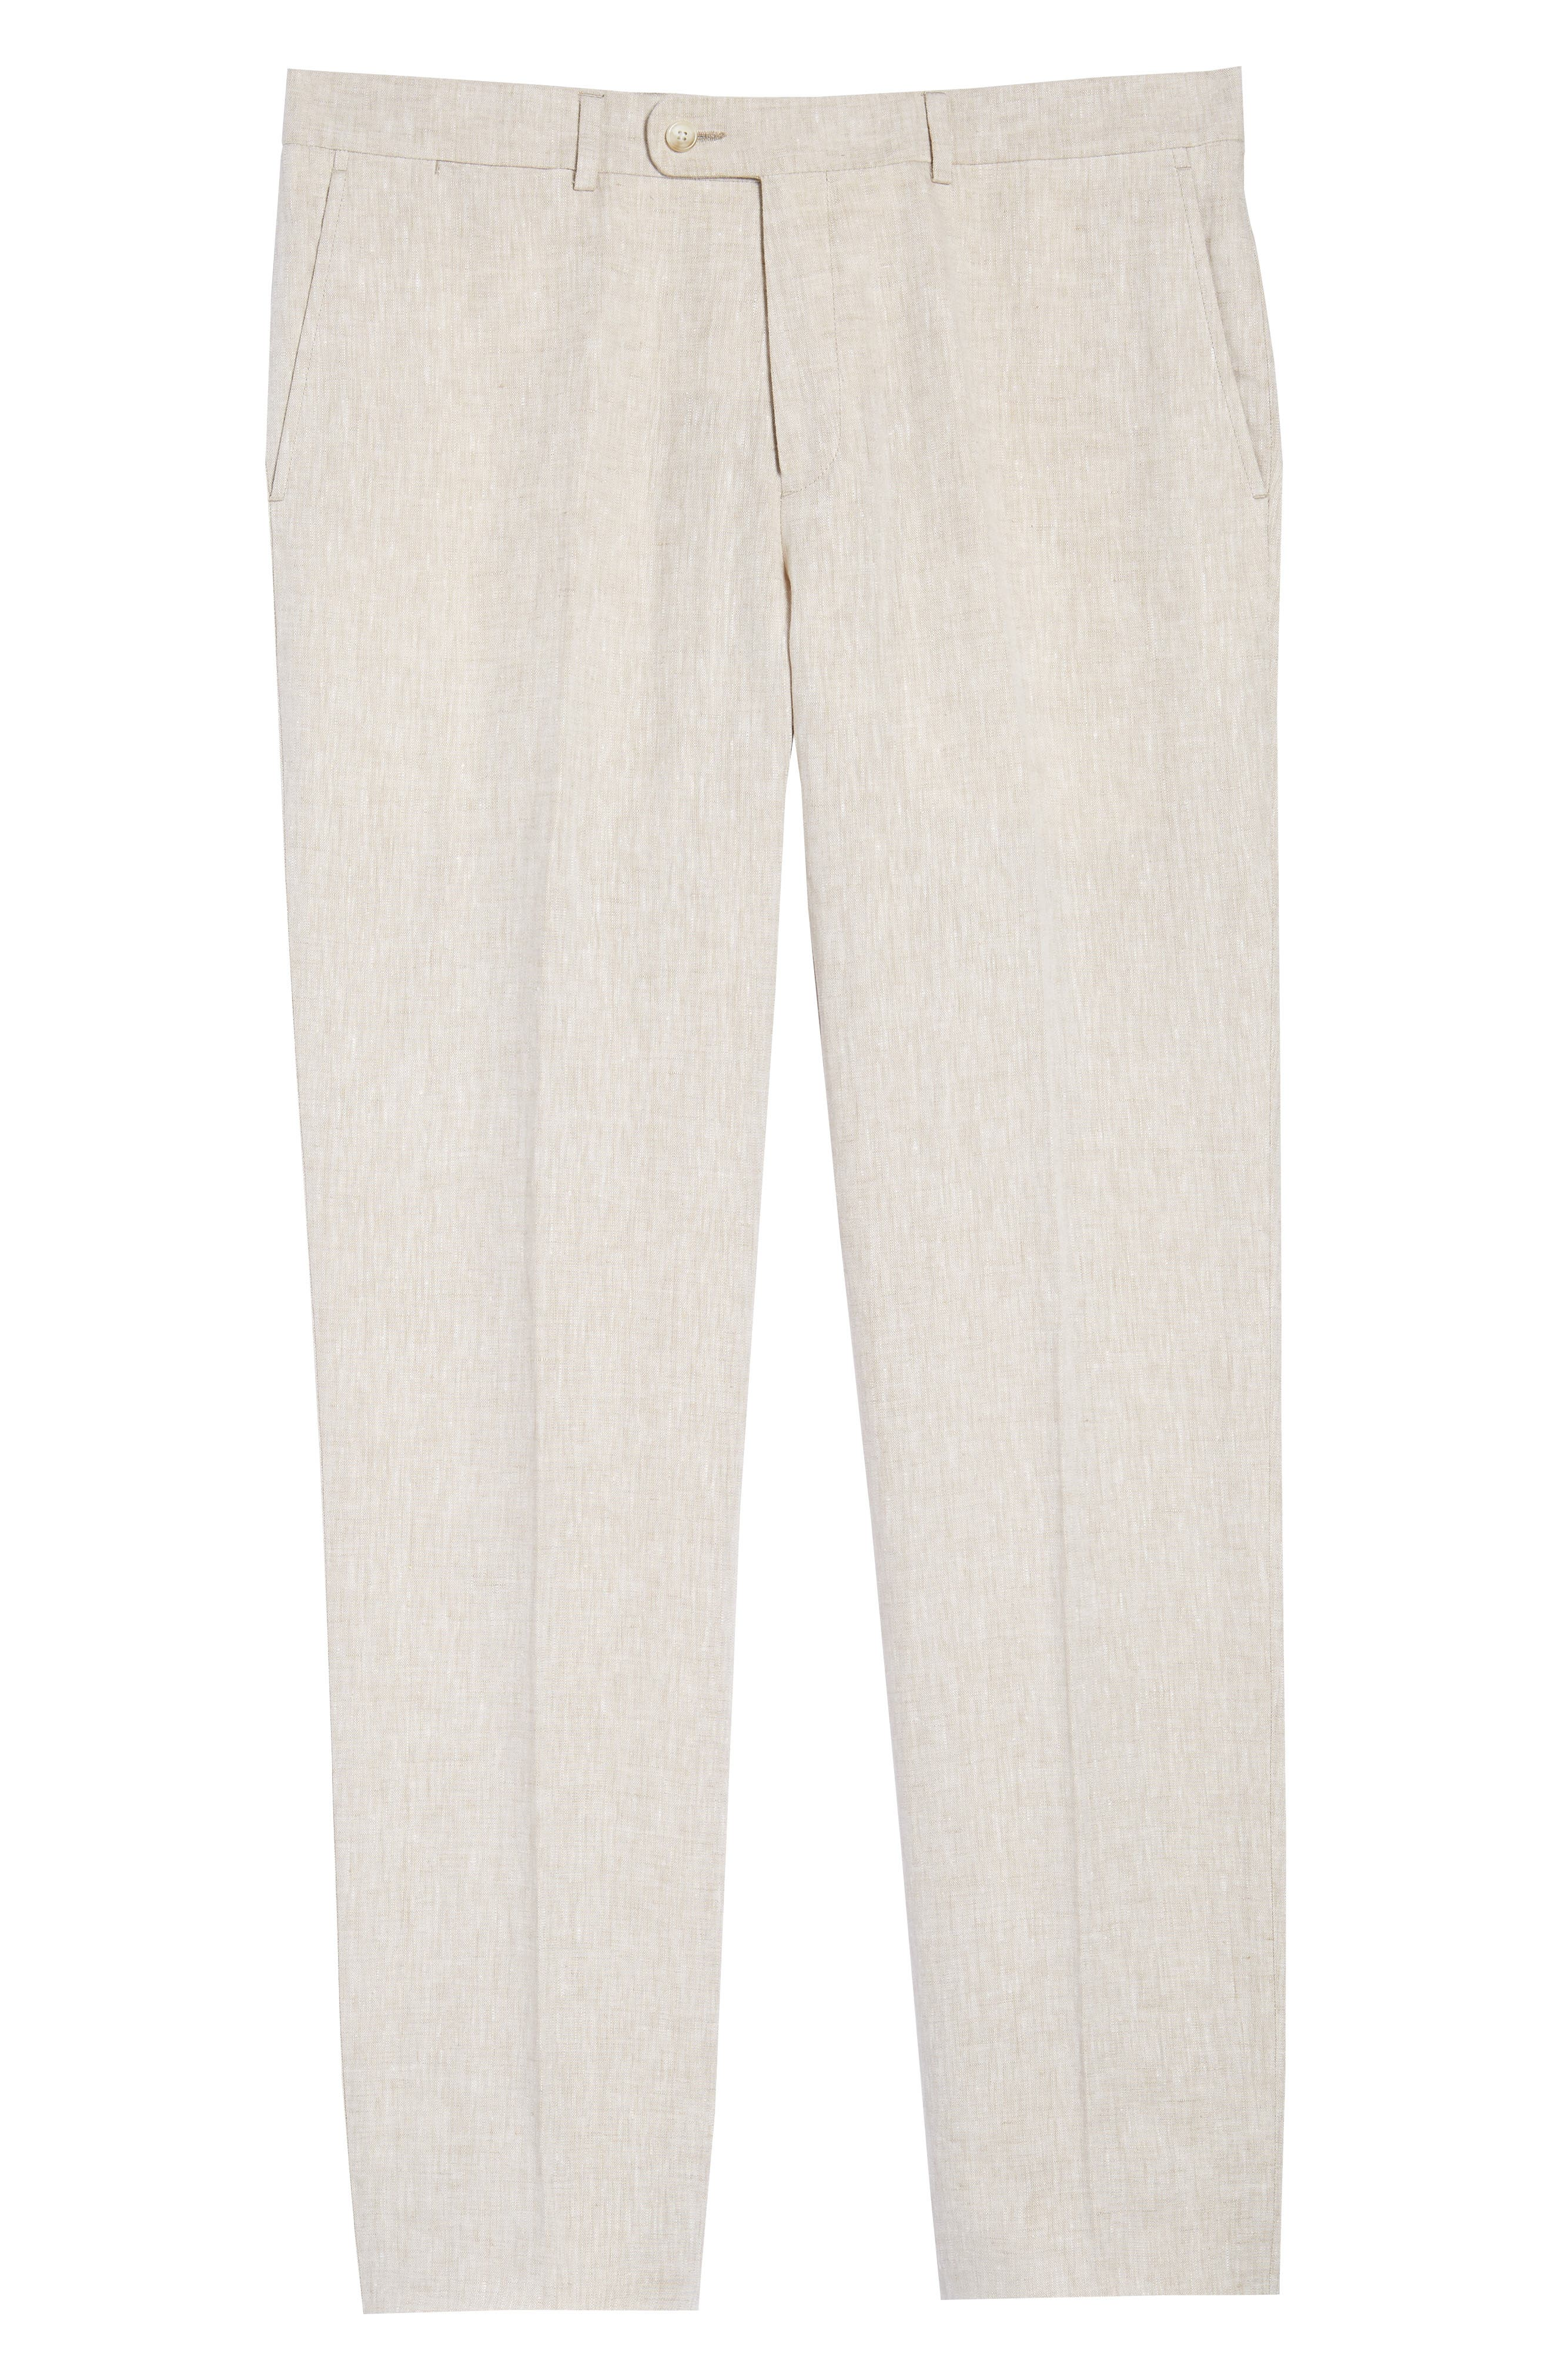 Andrew AIM Flat Front Linen Trousers,                             Alternate thumbnail 6, color,                             105